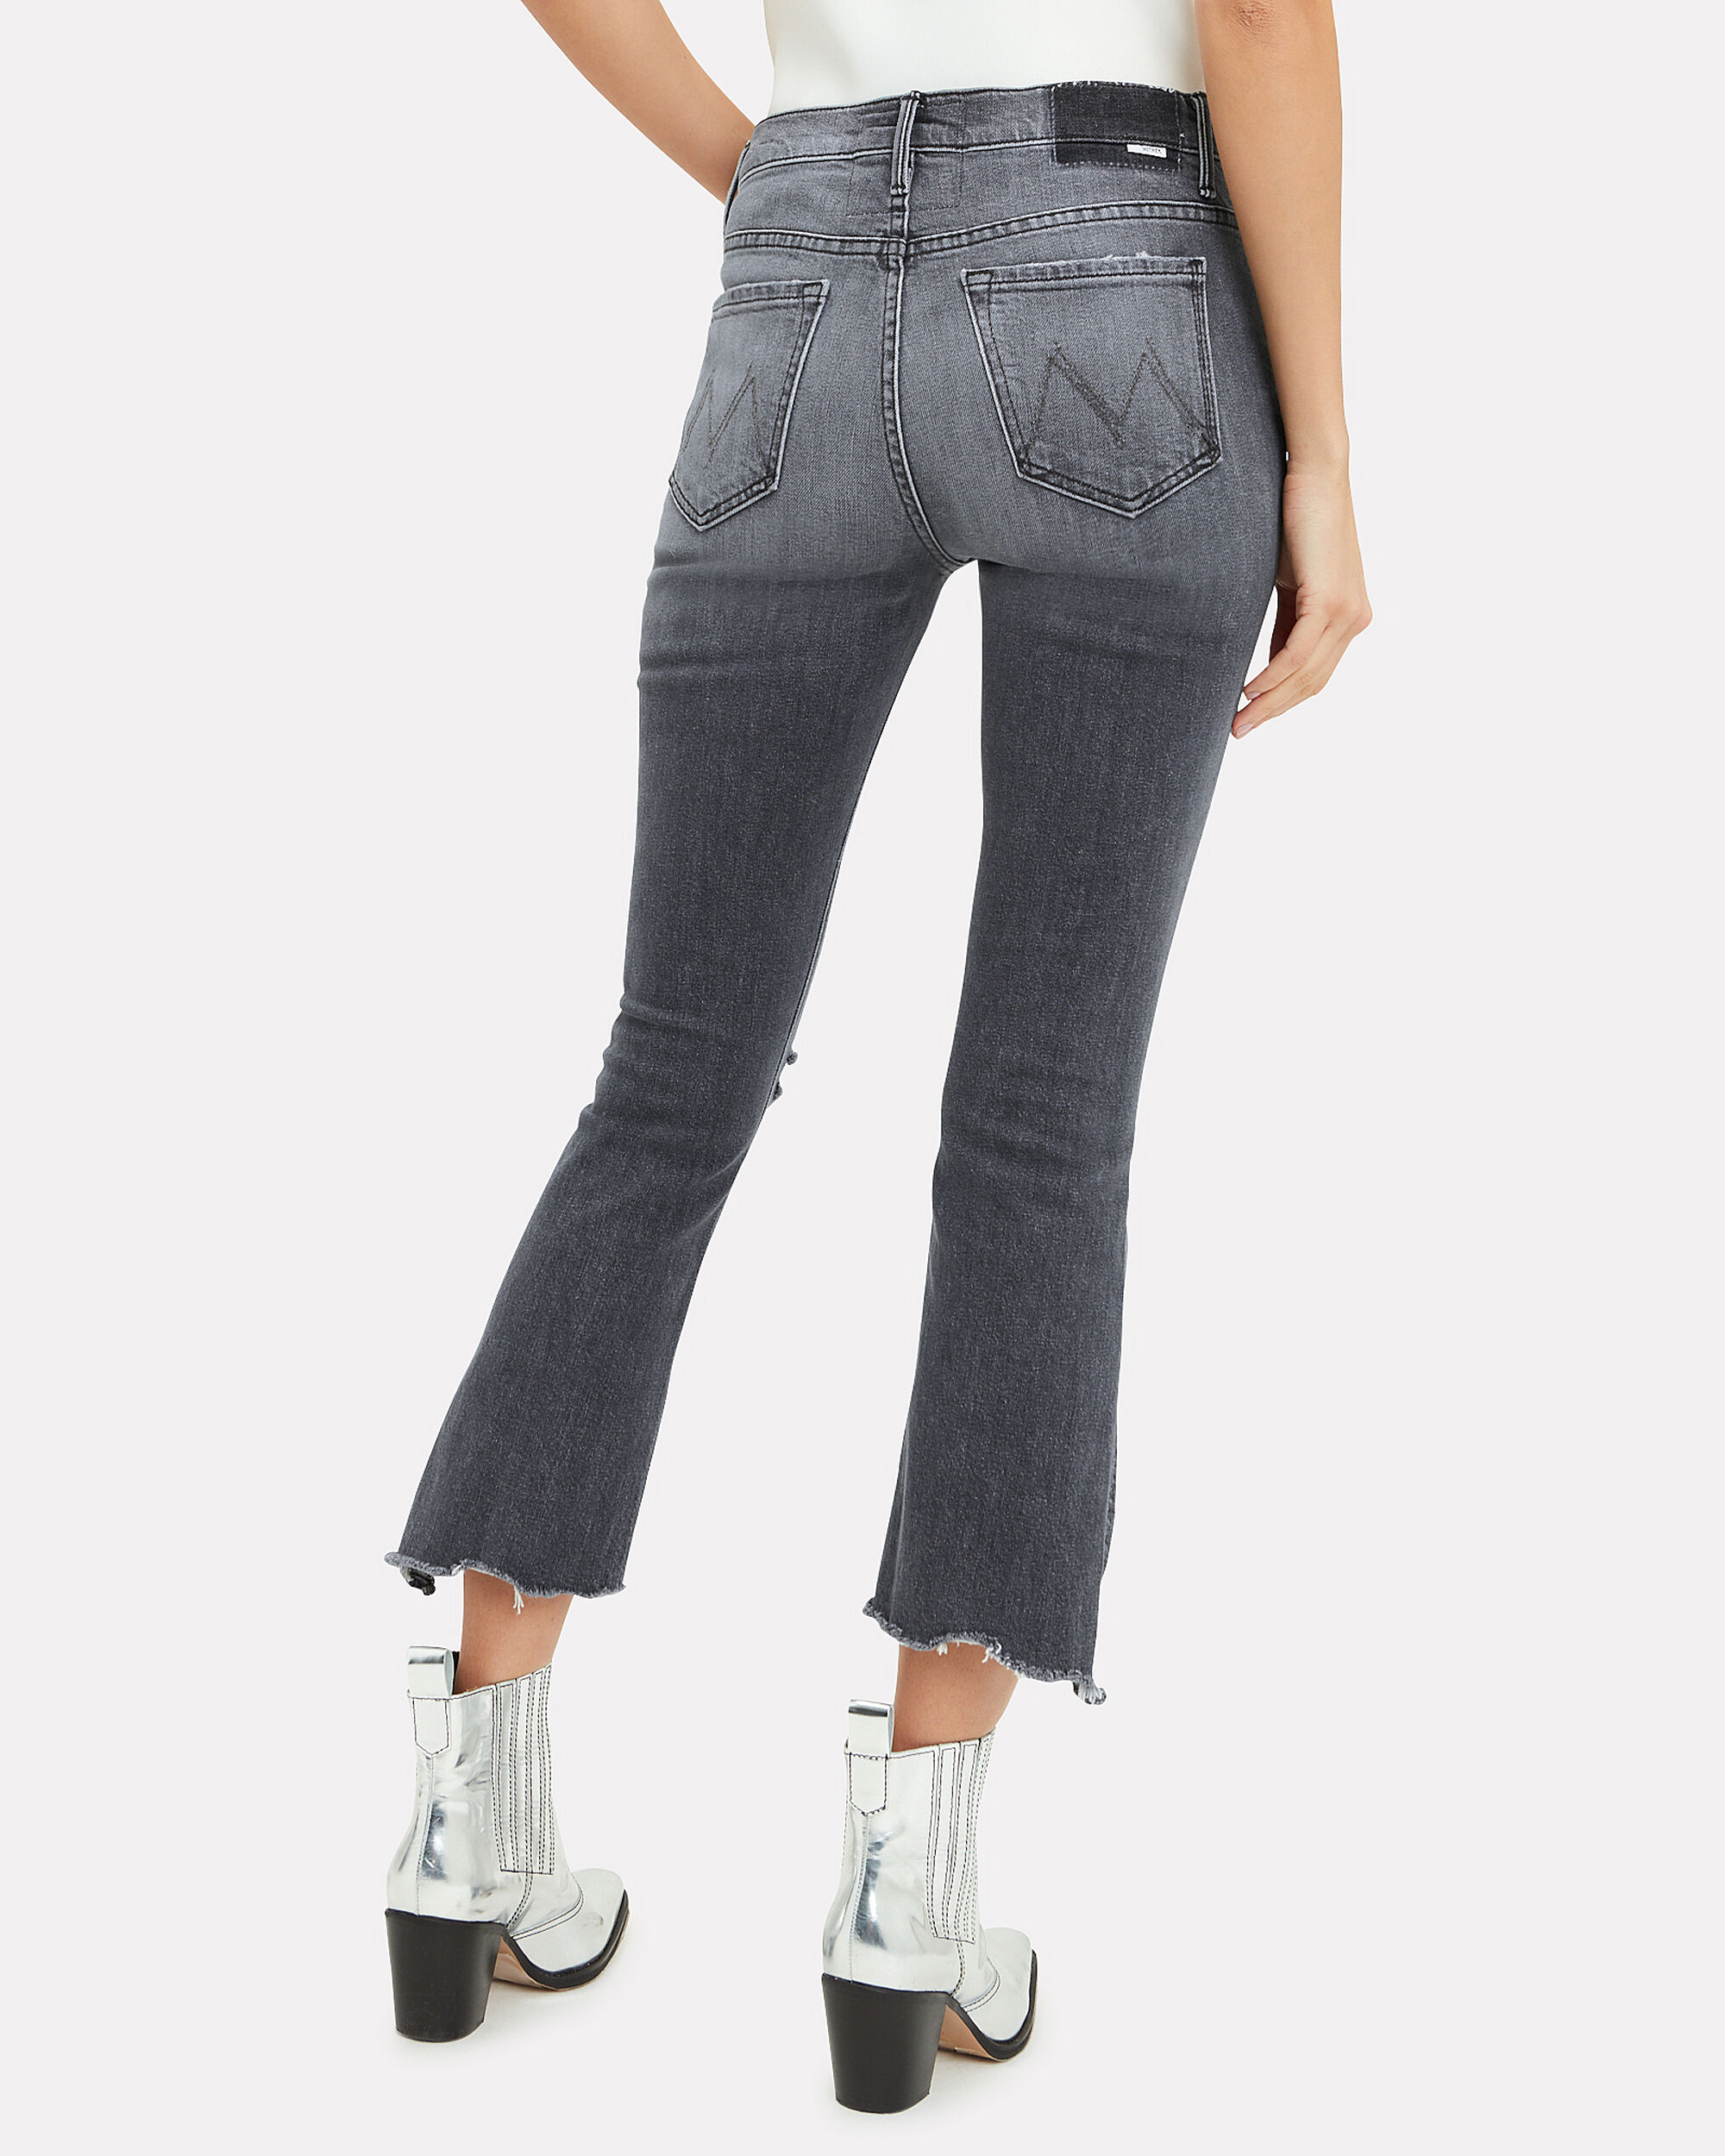 Insider Crop Chew Step Pedal To The Medal Jeans, DENIM, hi-res